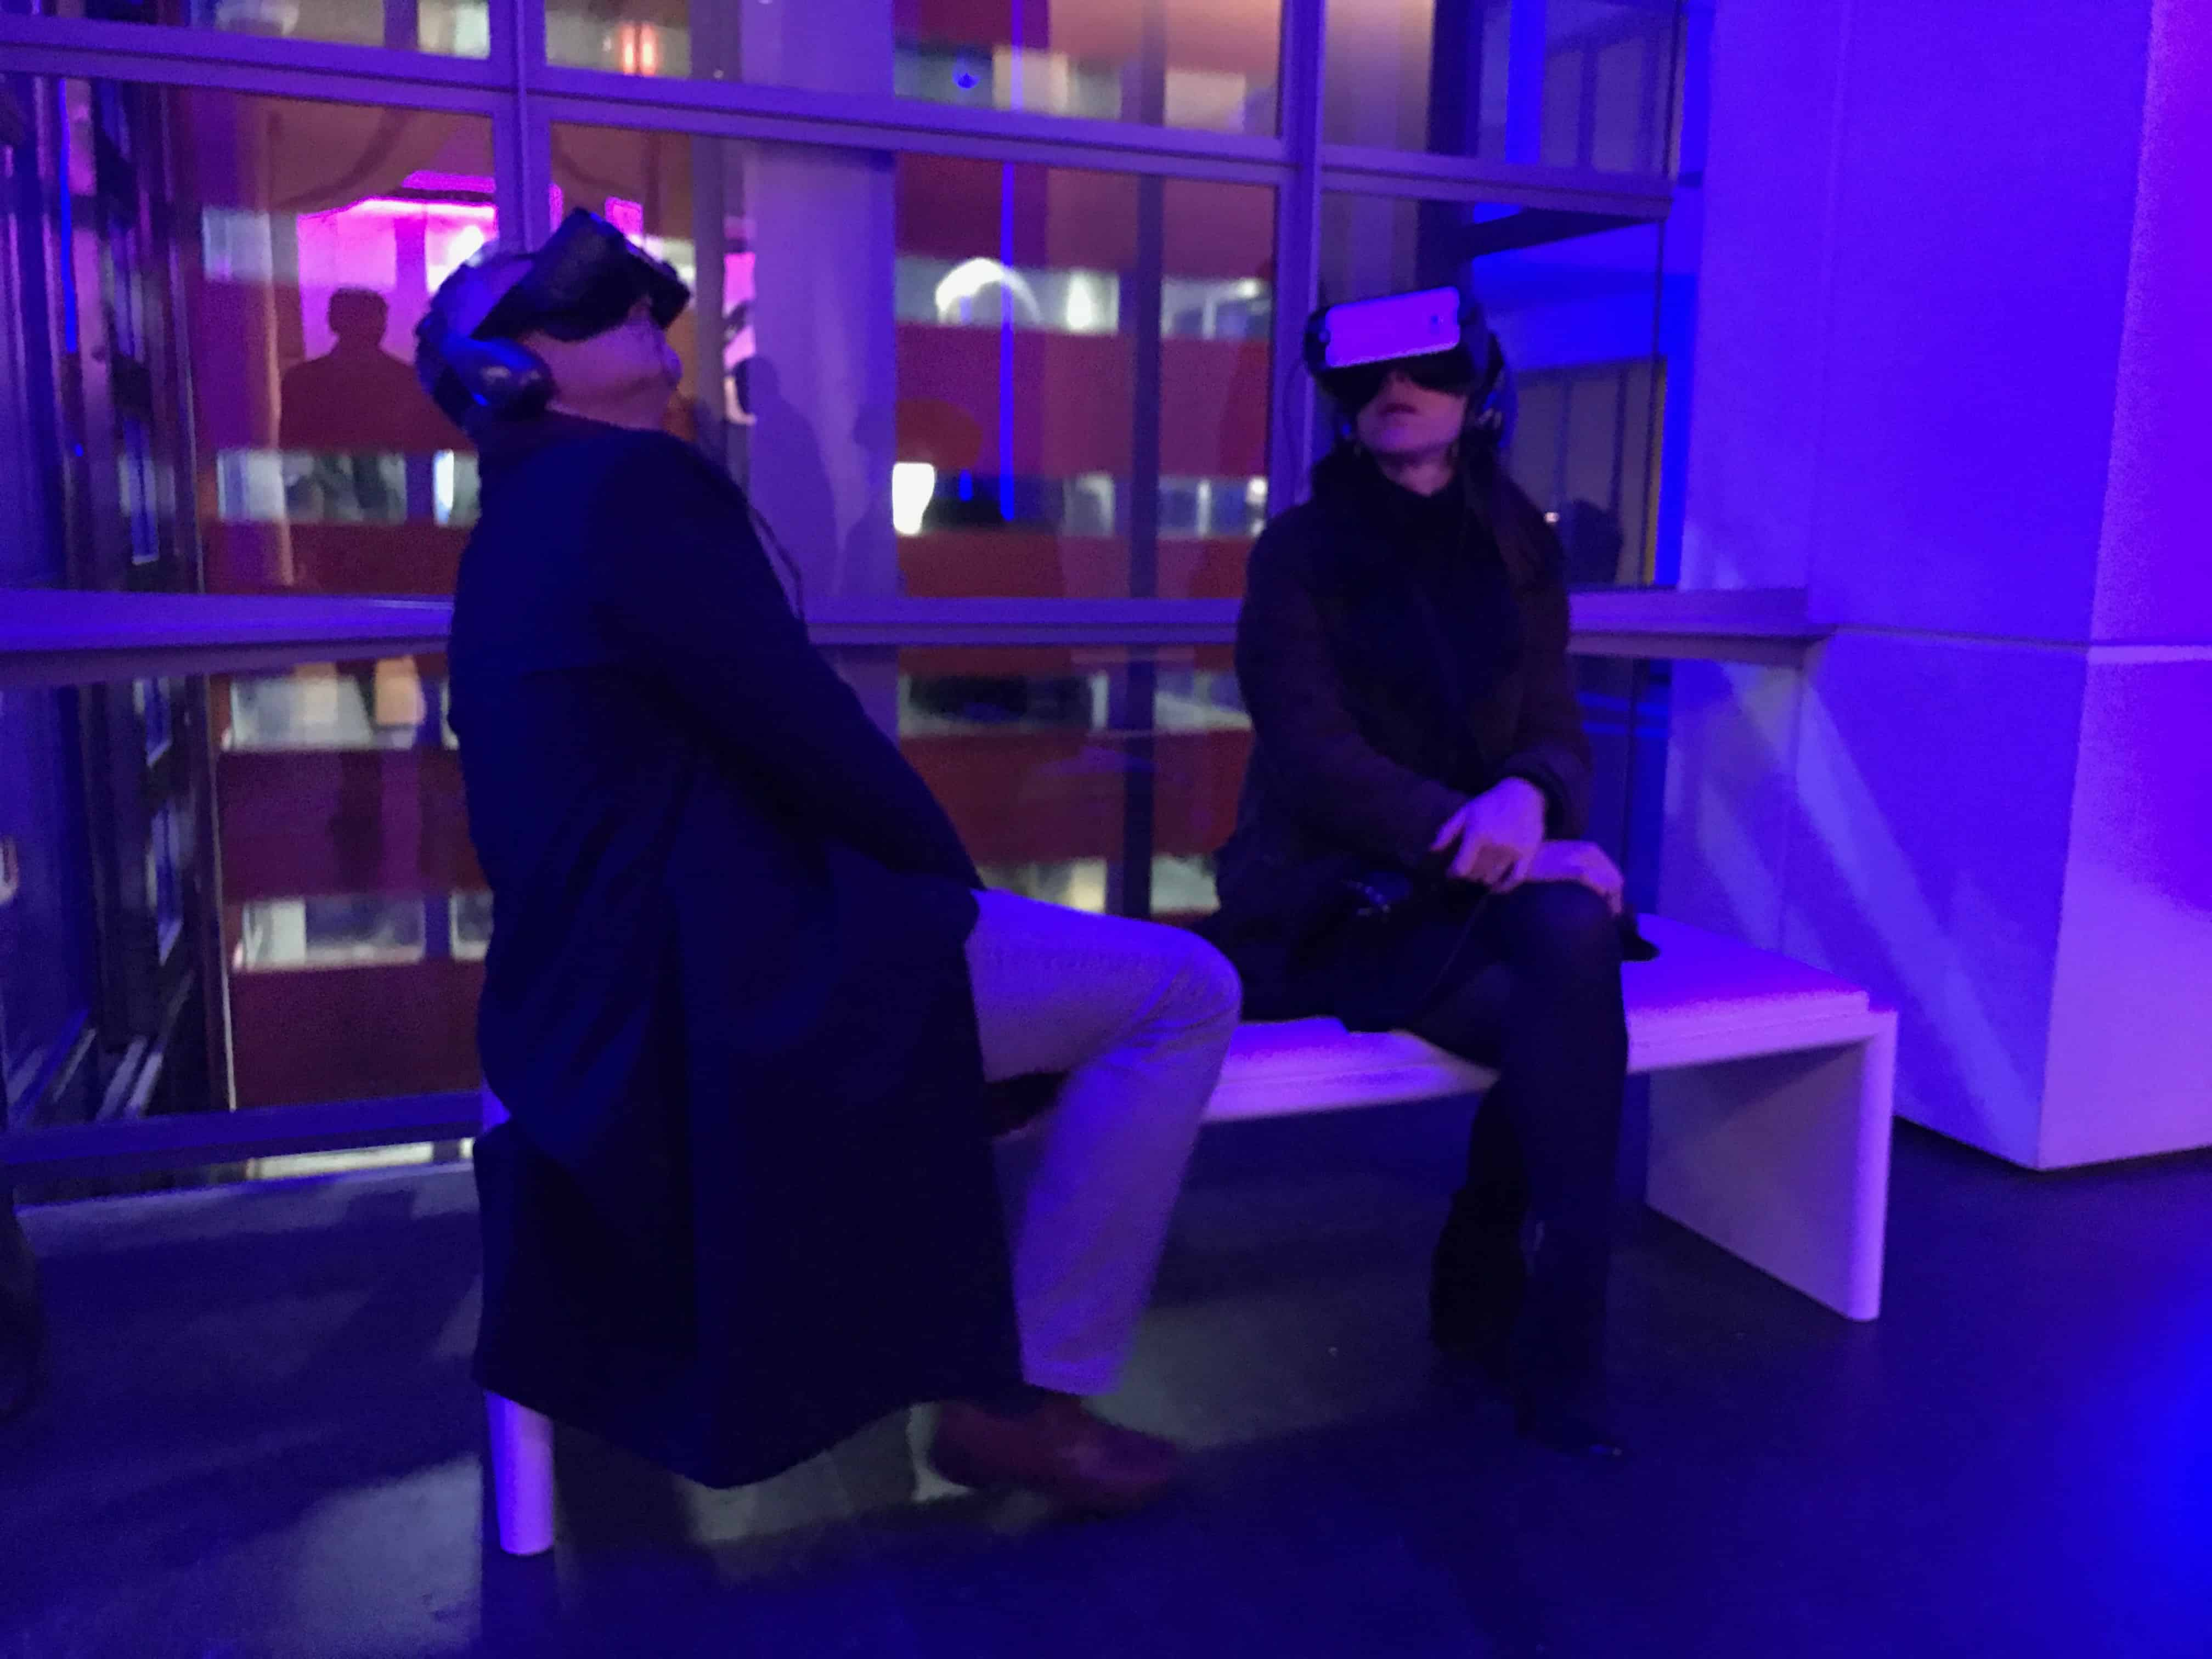 Two people at the Science Museum wearing VR headsets